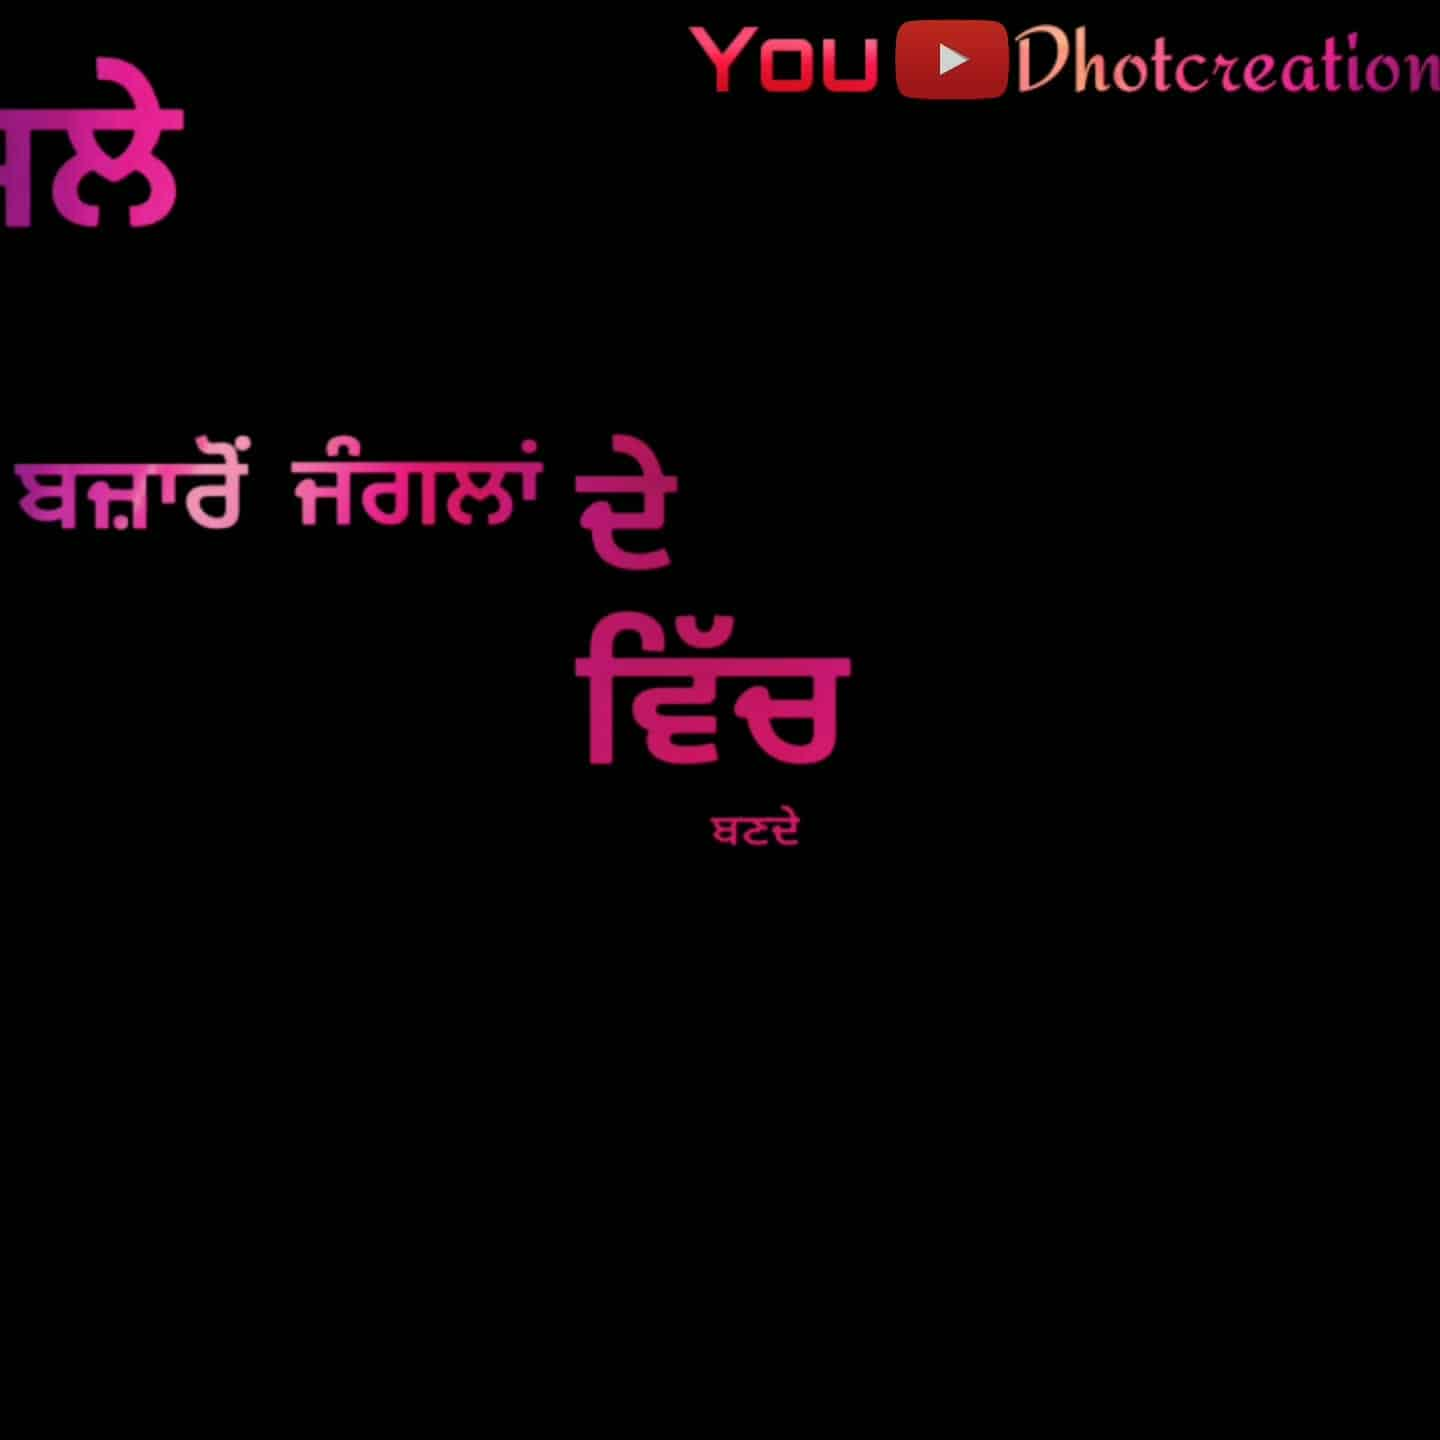 Bandookan angrej Ali whtsapp status #whatsapp  #roposo  #roposoness  #punjabi  #punjabi-gabru  #ropo-punjabi  #love  #life  #status  #love-status-roposo-beats  #feed  #feeds #roposo-feed  #new-whatsapp-status  #newsong  #newpunjabisong2019  #newpunjabisong2018  #statue  #roposostarchannel  #roposostars  #roposostars #pollywood  #ninja  #sweetlove  #whatsapp_status  #new-youtube